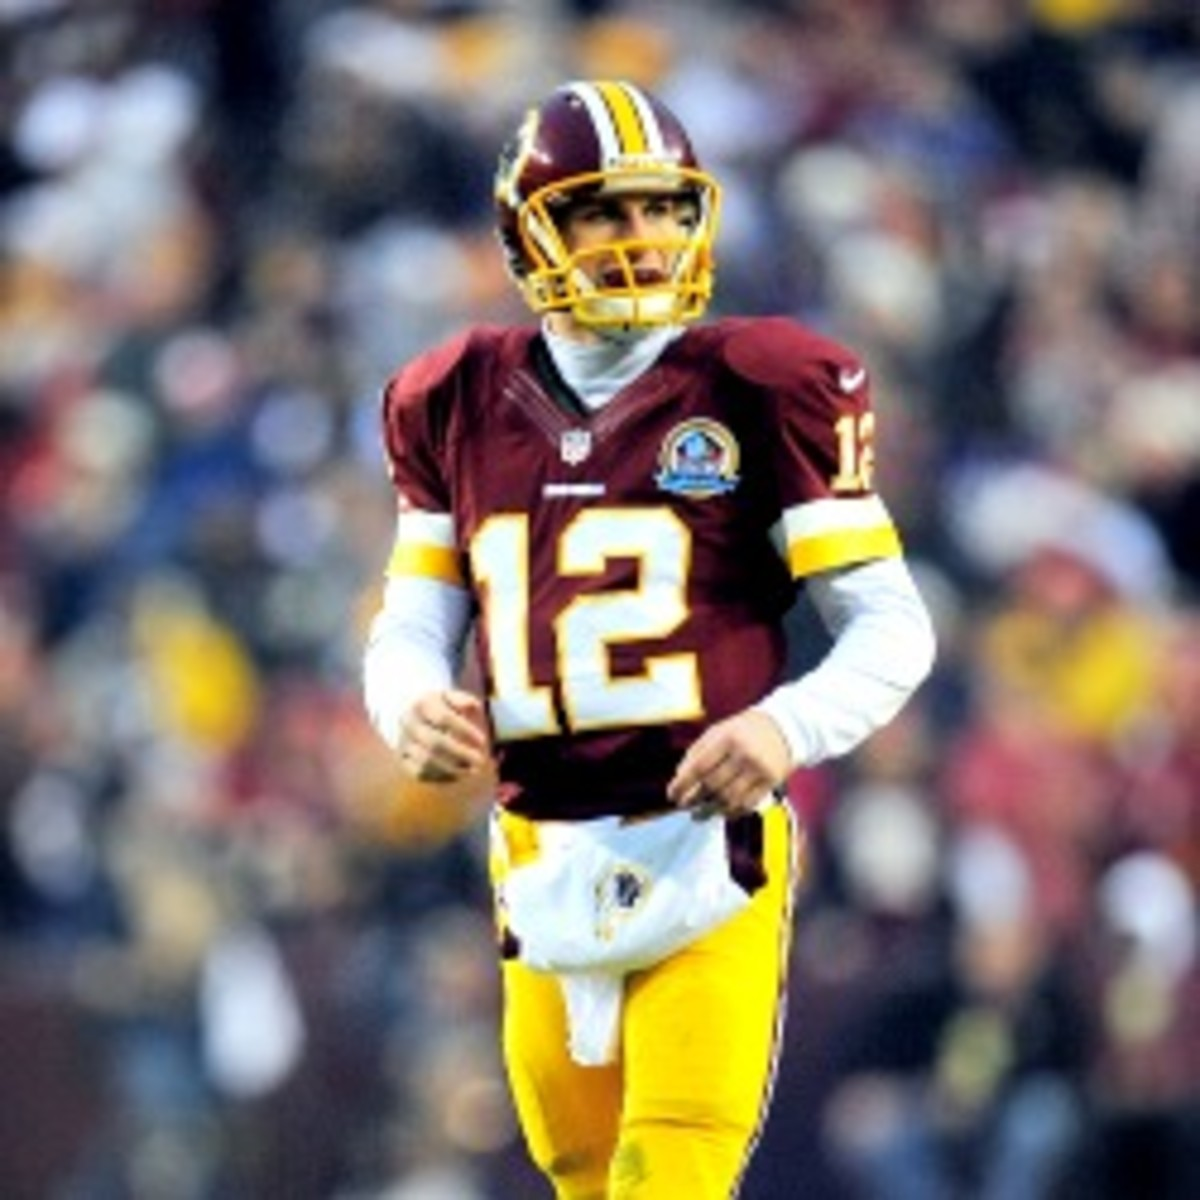 Rookie Kirk Cousins will get his first start against the Cleveland Browns on Sunday. (Patrick McDermott/Getty Images)